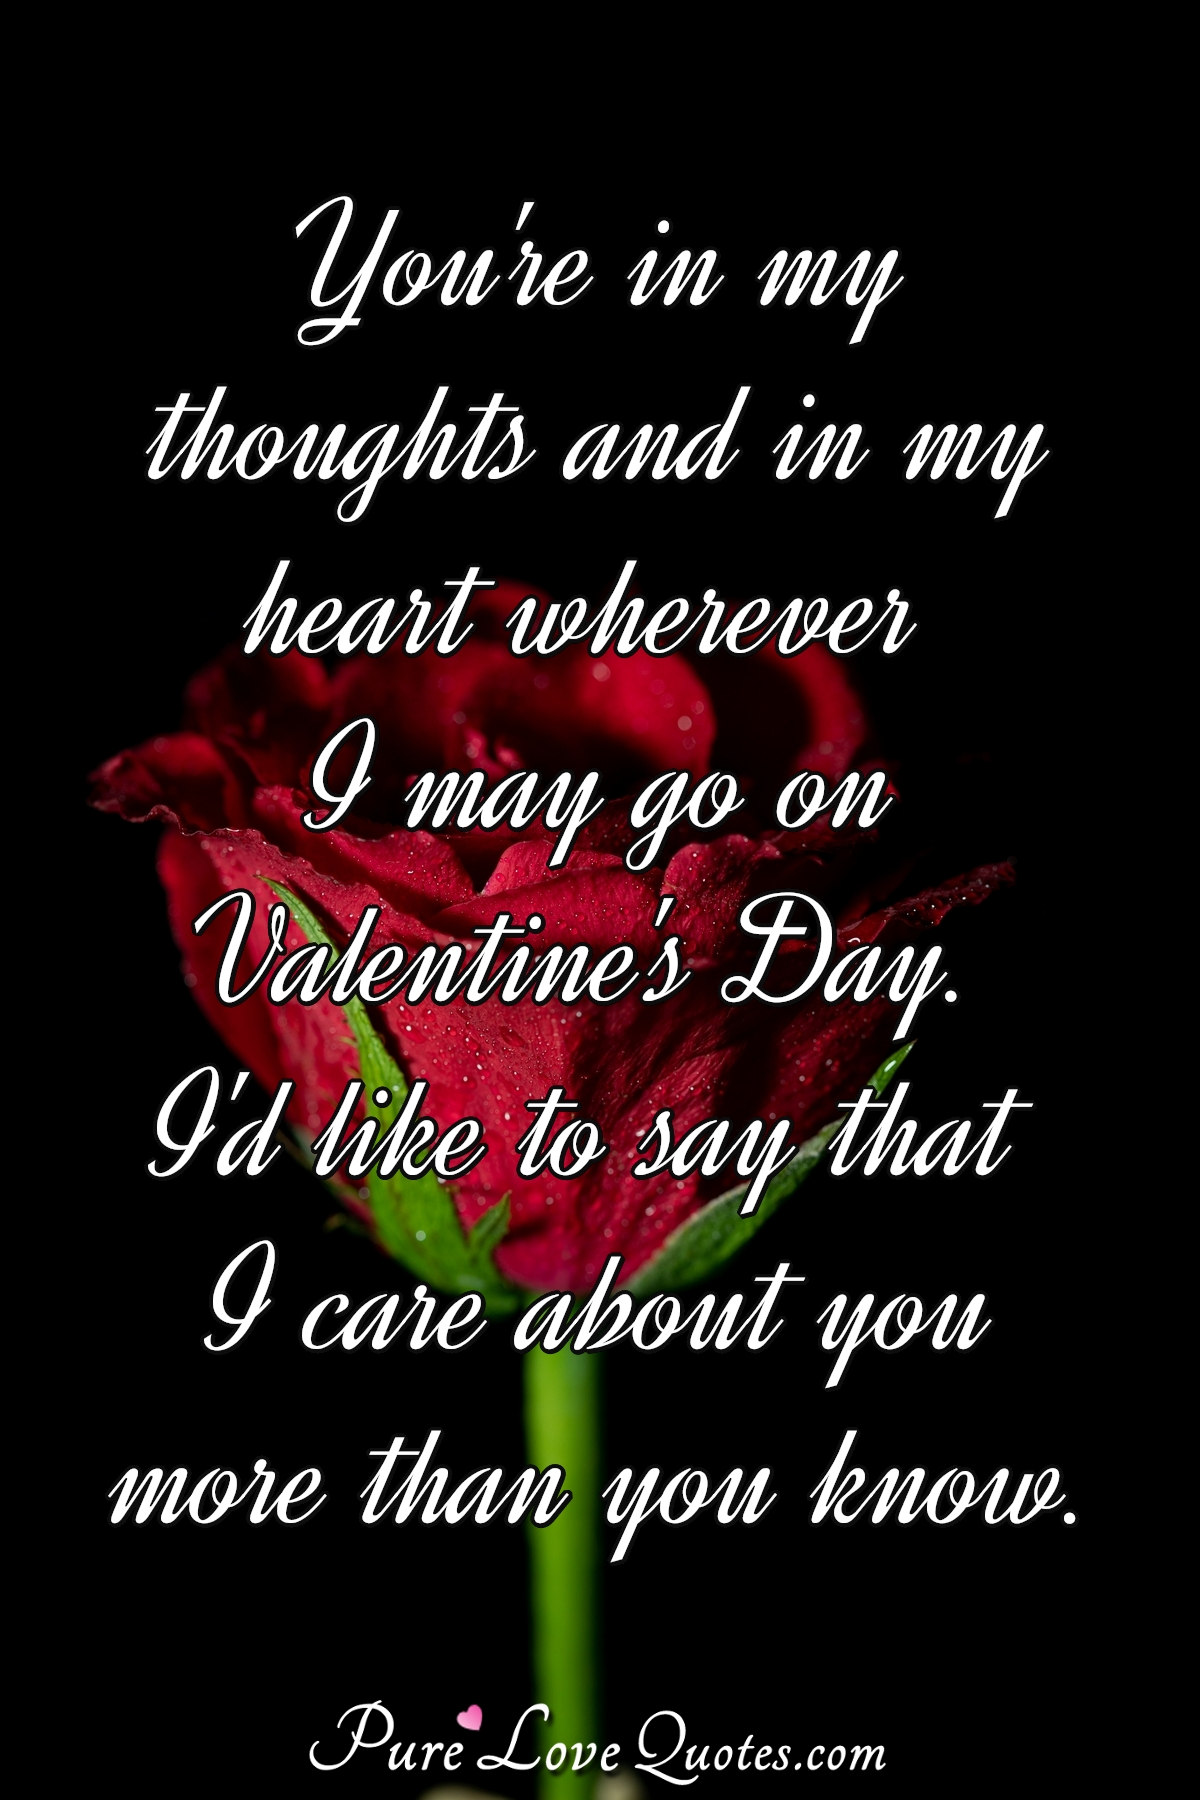 You're in my thoughts and in my heart wherever I may go on Valentine's Day. I'd like to say that I care about you more than you know. - Anonymous